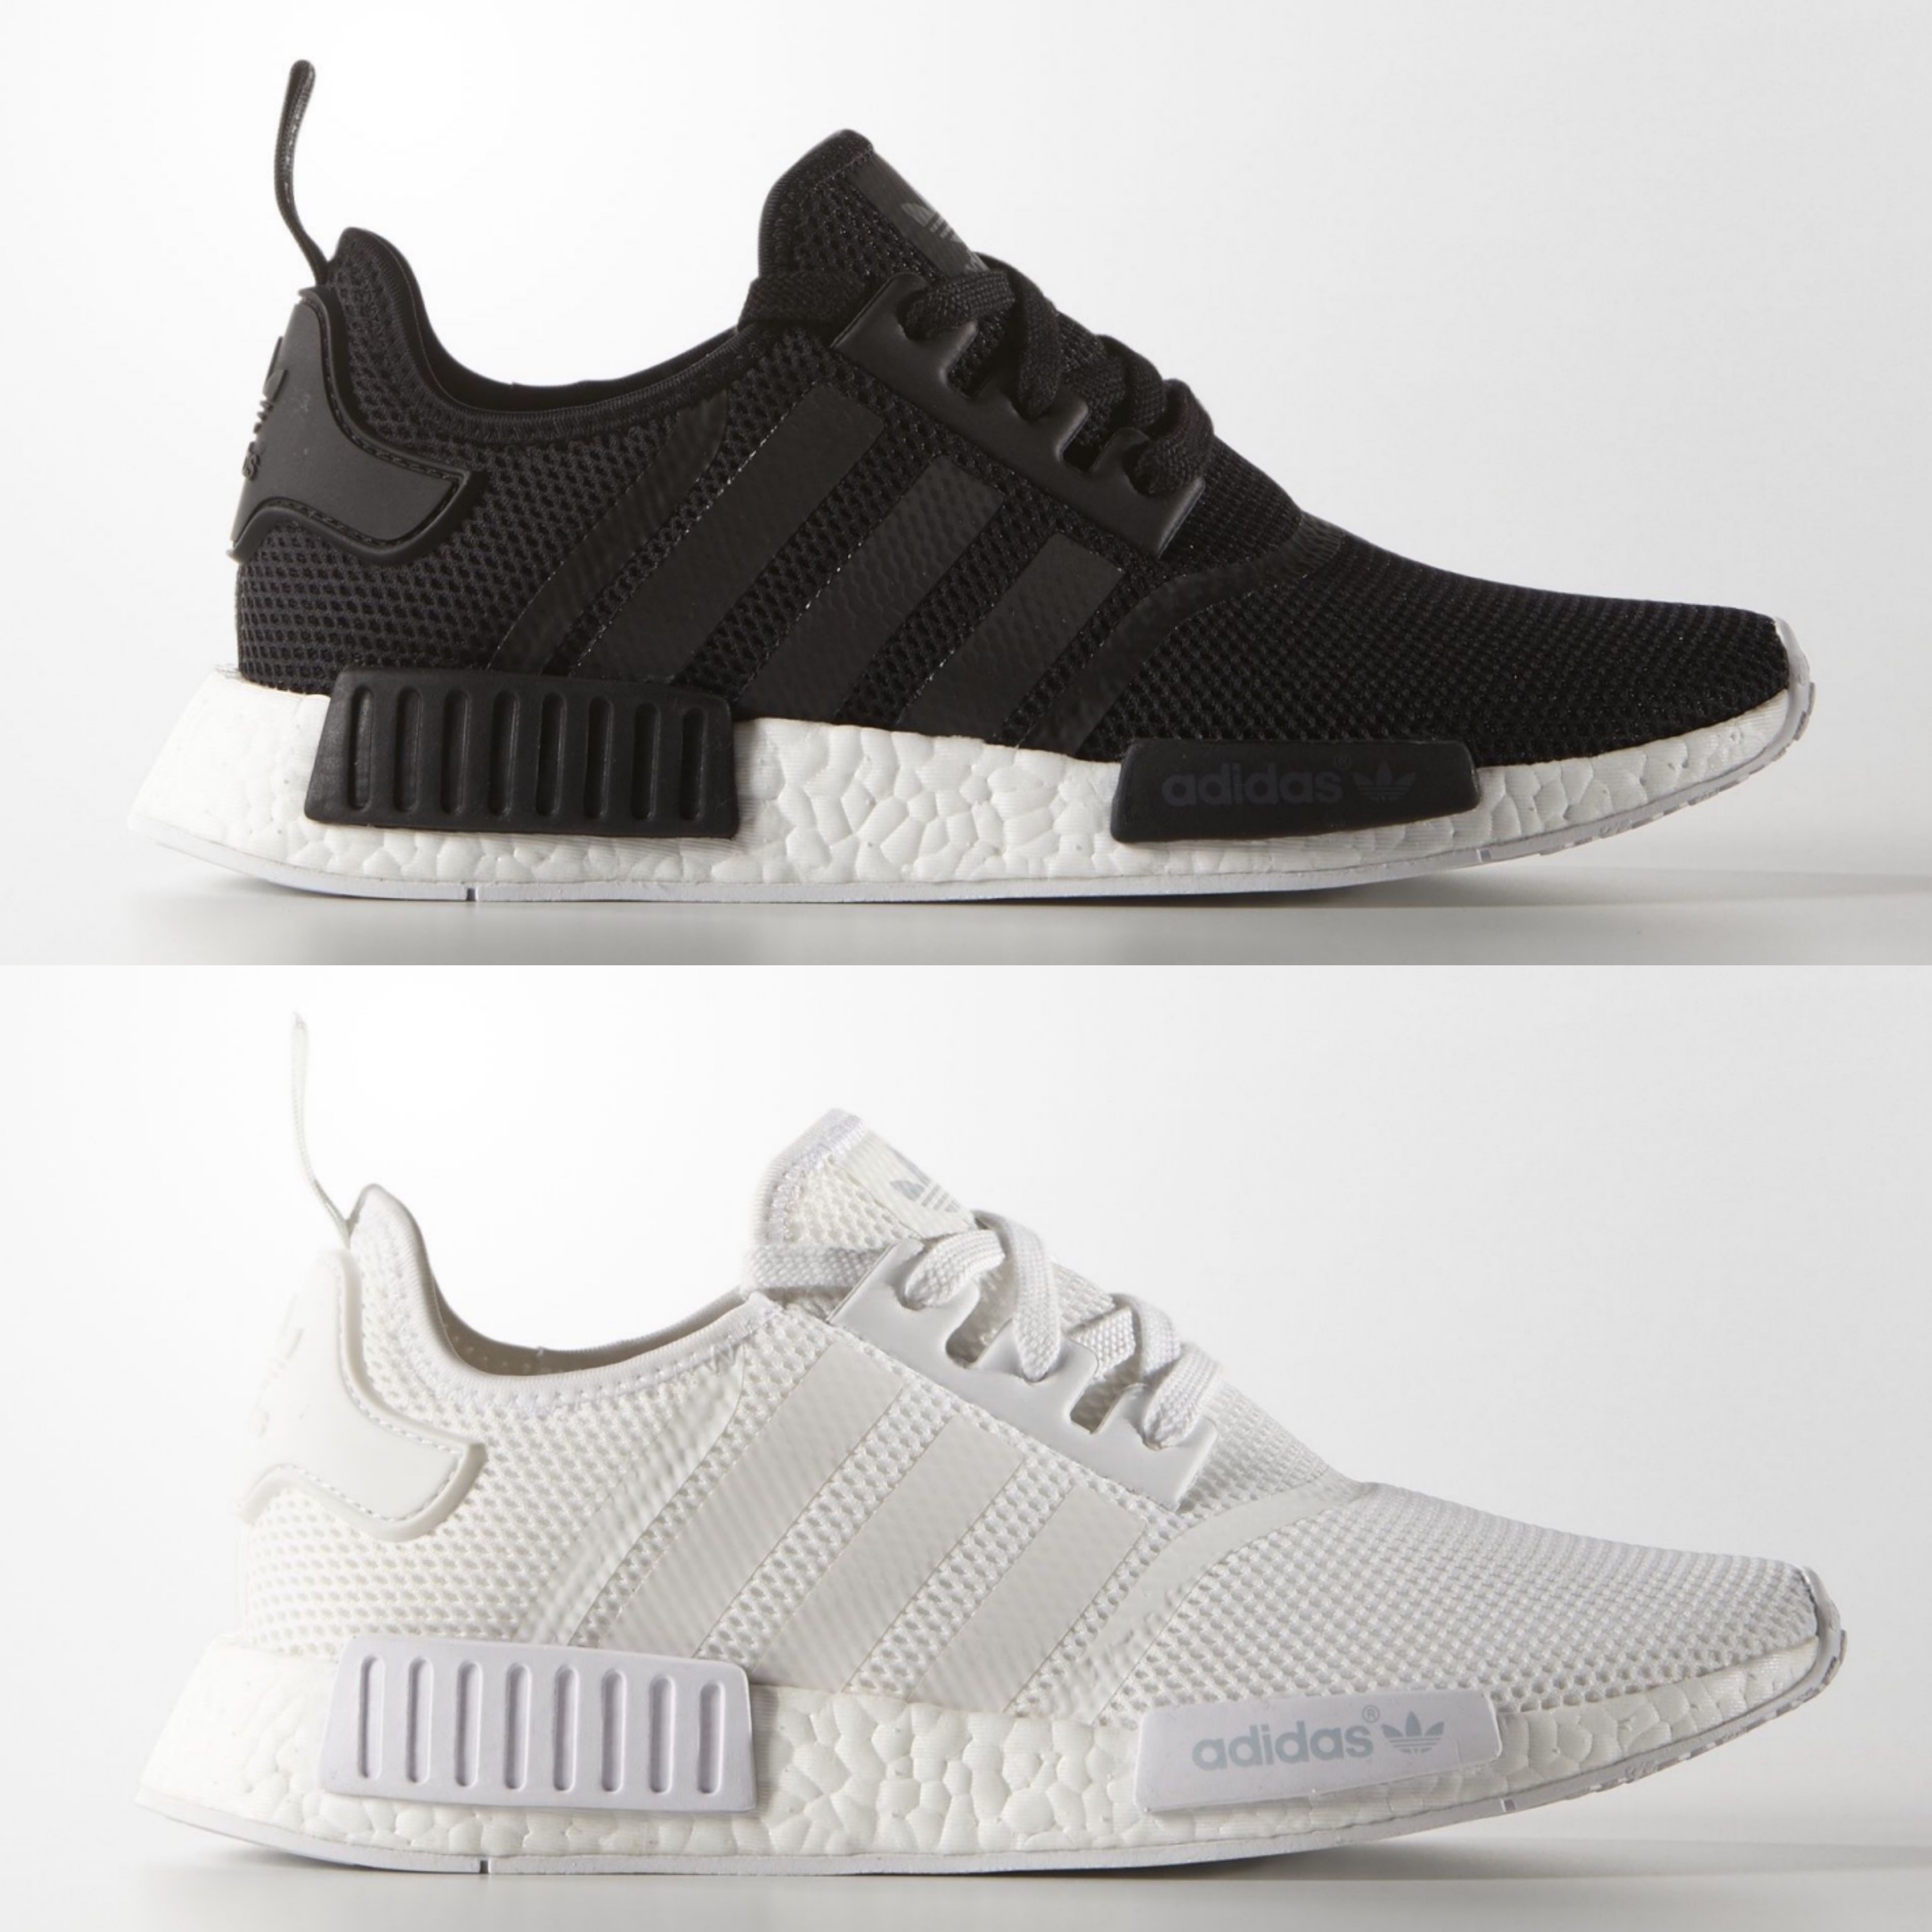 various colors 52e0a a010f The adidas NMD R1 Runner is Available in Multiple Colorways ...